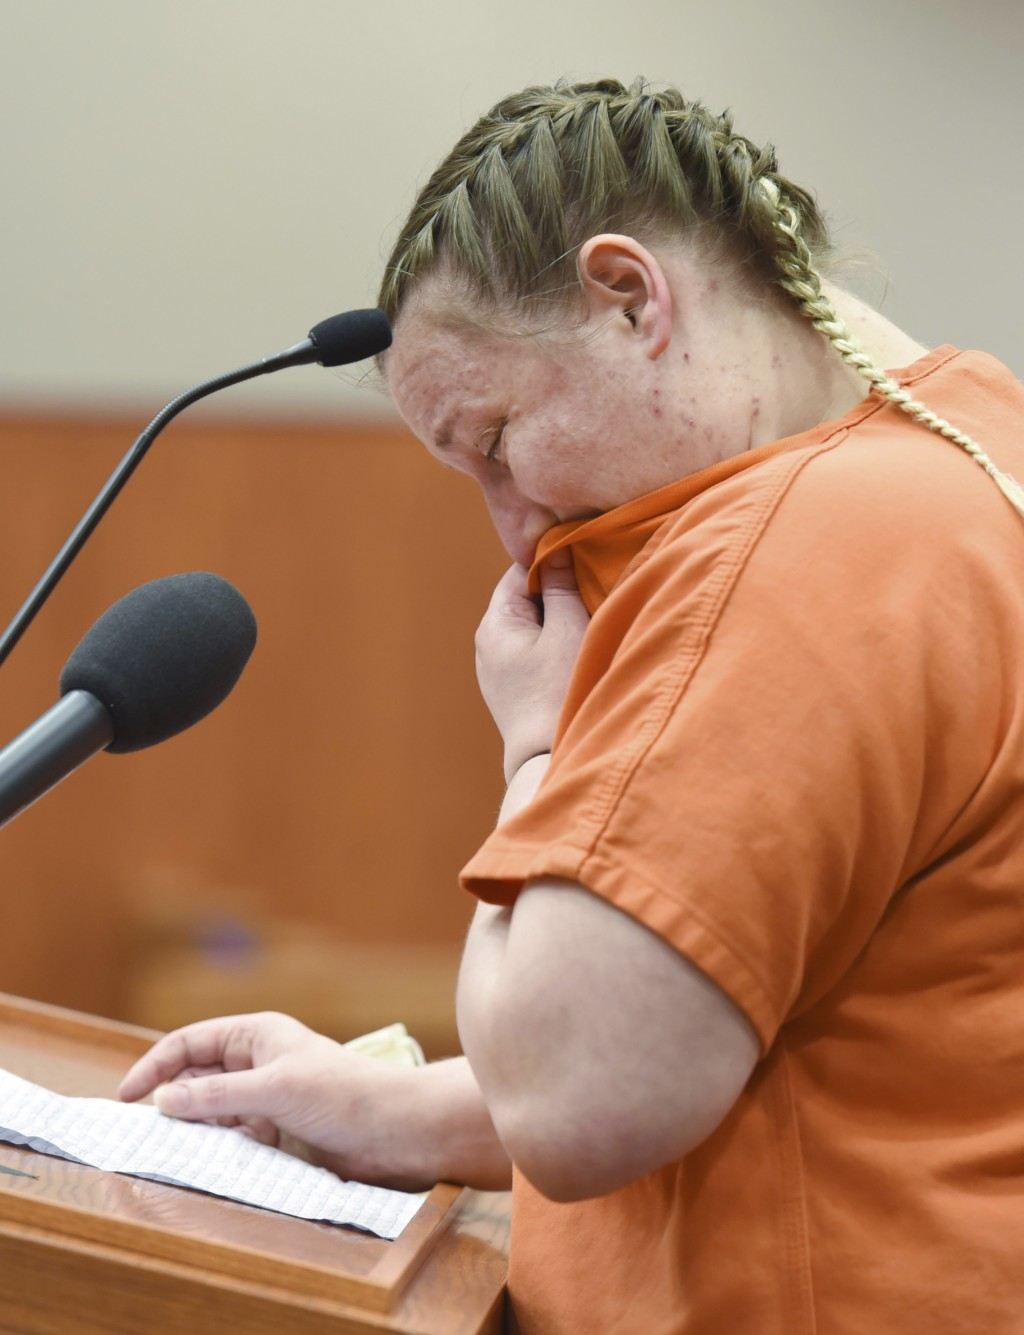 JoAnn Cunningham cries as she reads a statement during a sentencing hearing in Woodstock, Ill., Thursday, July 16, 2020. Cunningham pleaded guilty in ...